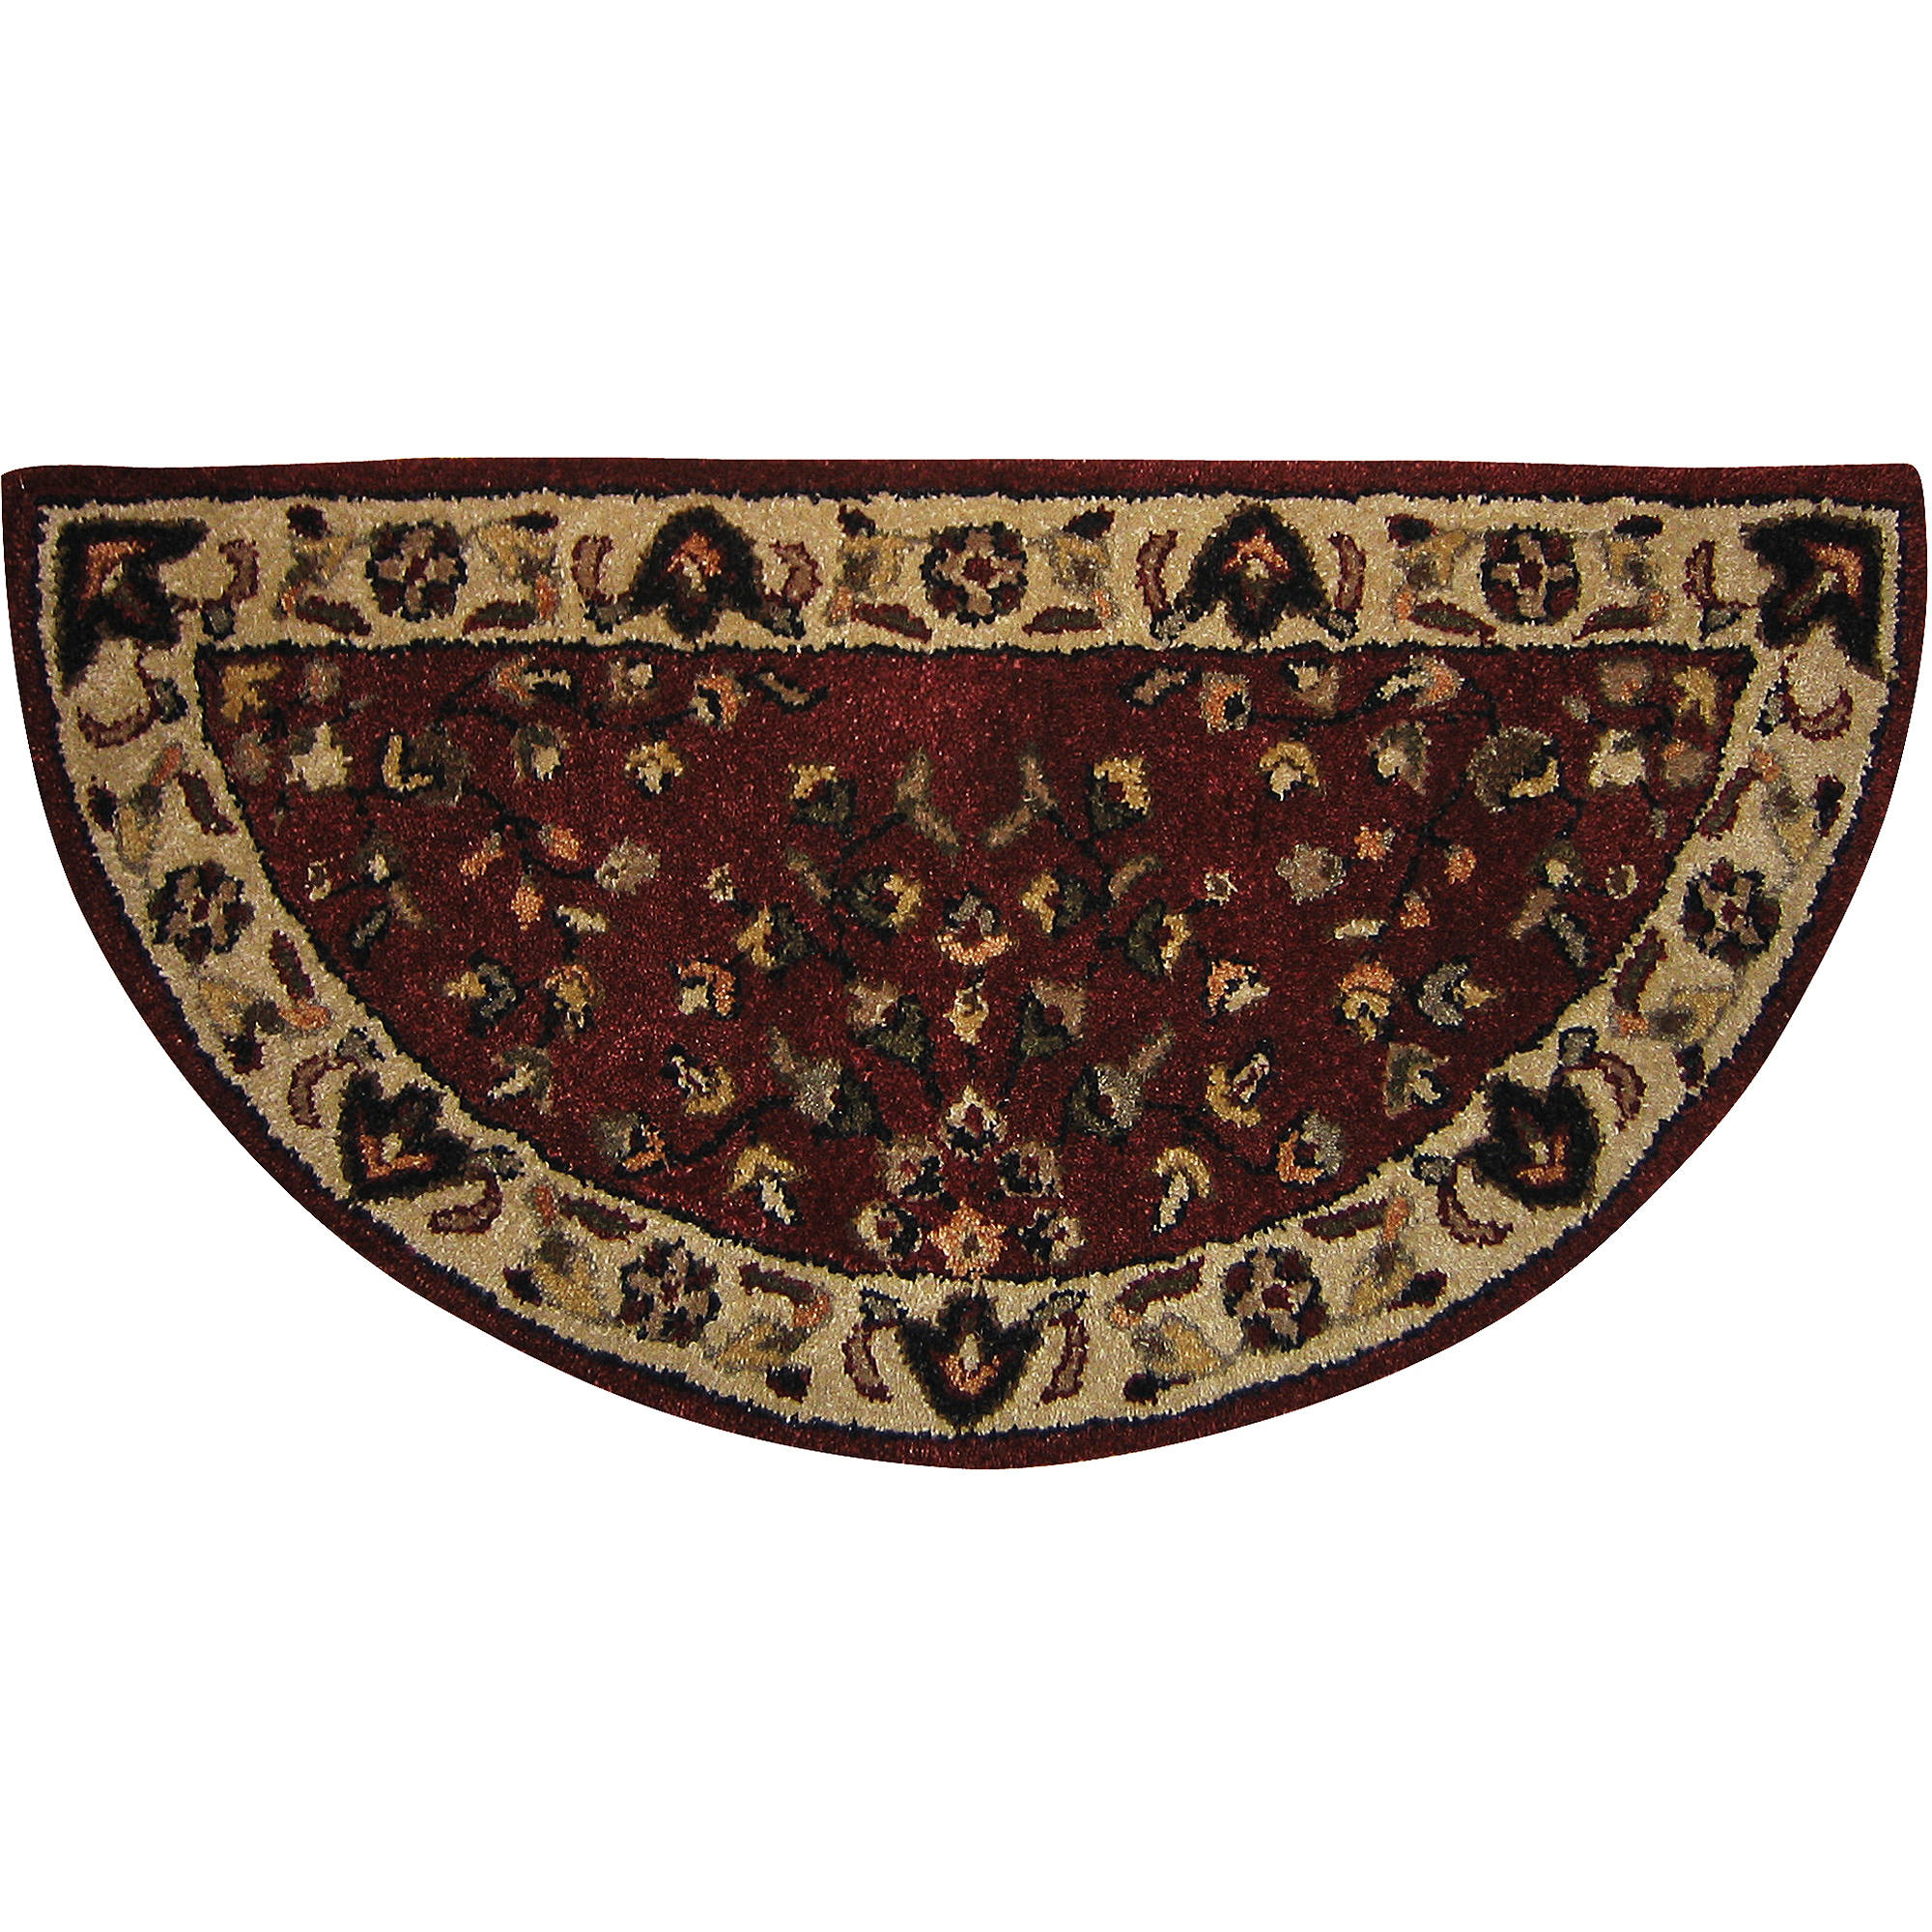 Uniflame Half-Circle Floral Hearth Rug, Red and Beige by Blue Rhino Global Sourcing, Inc